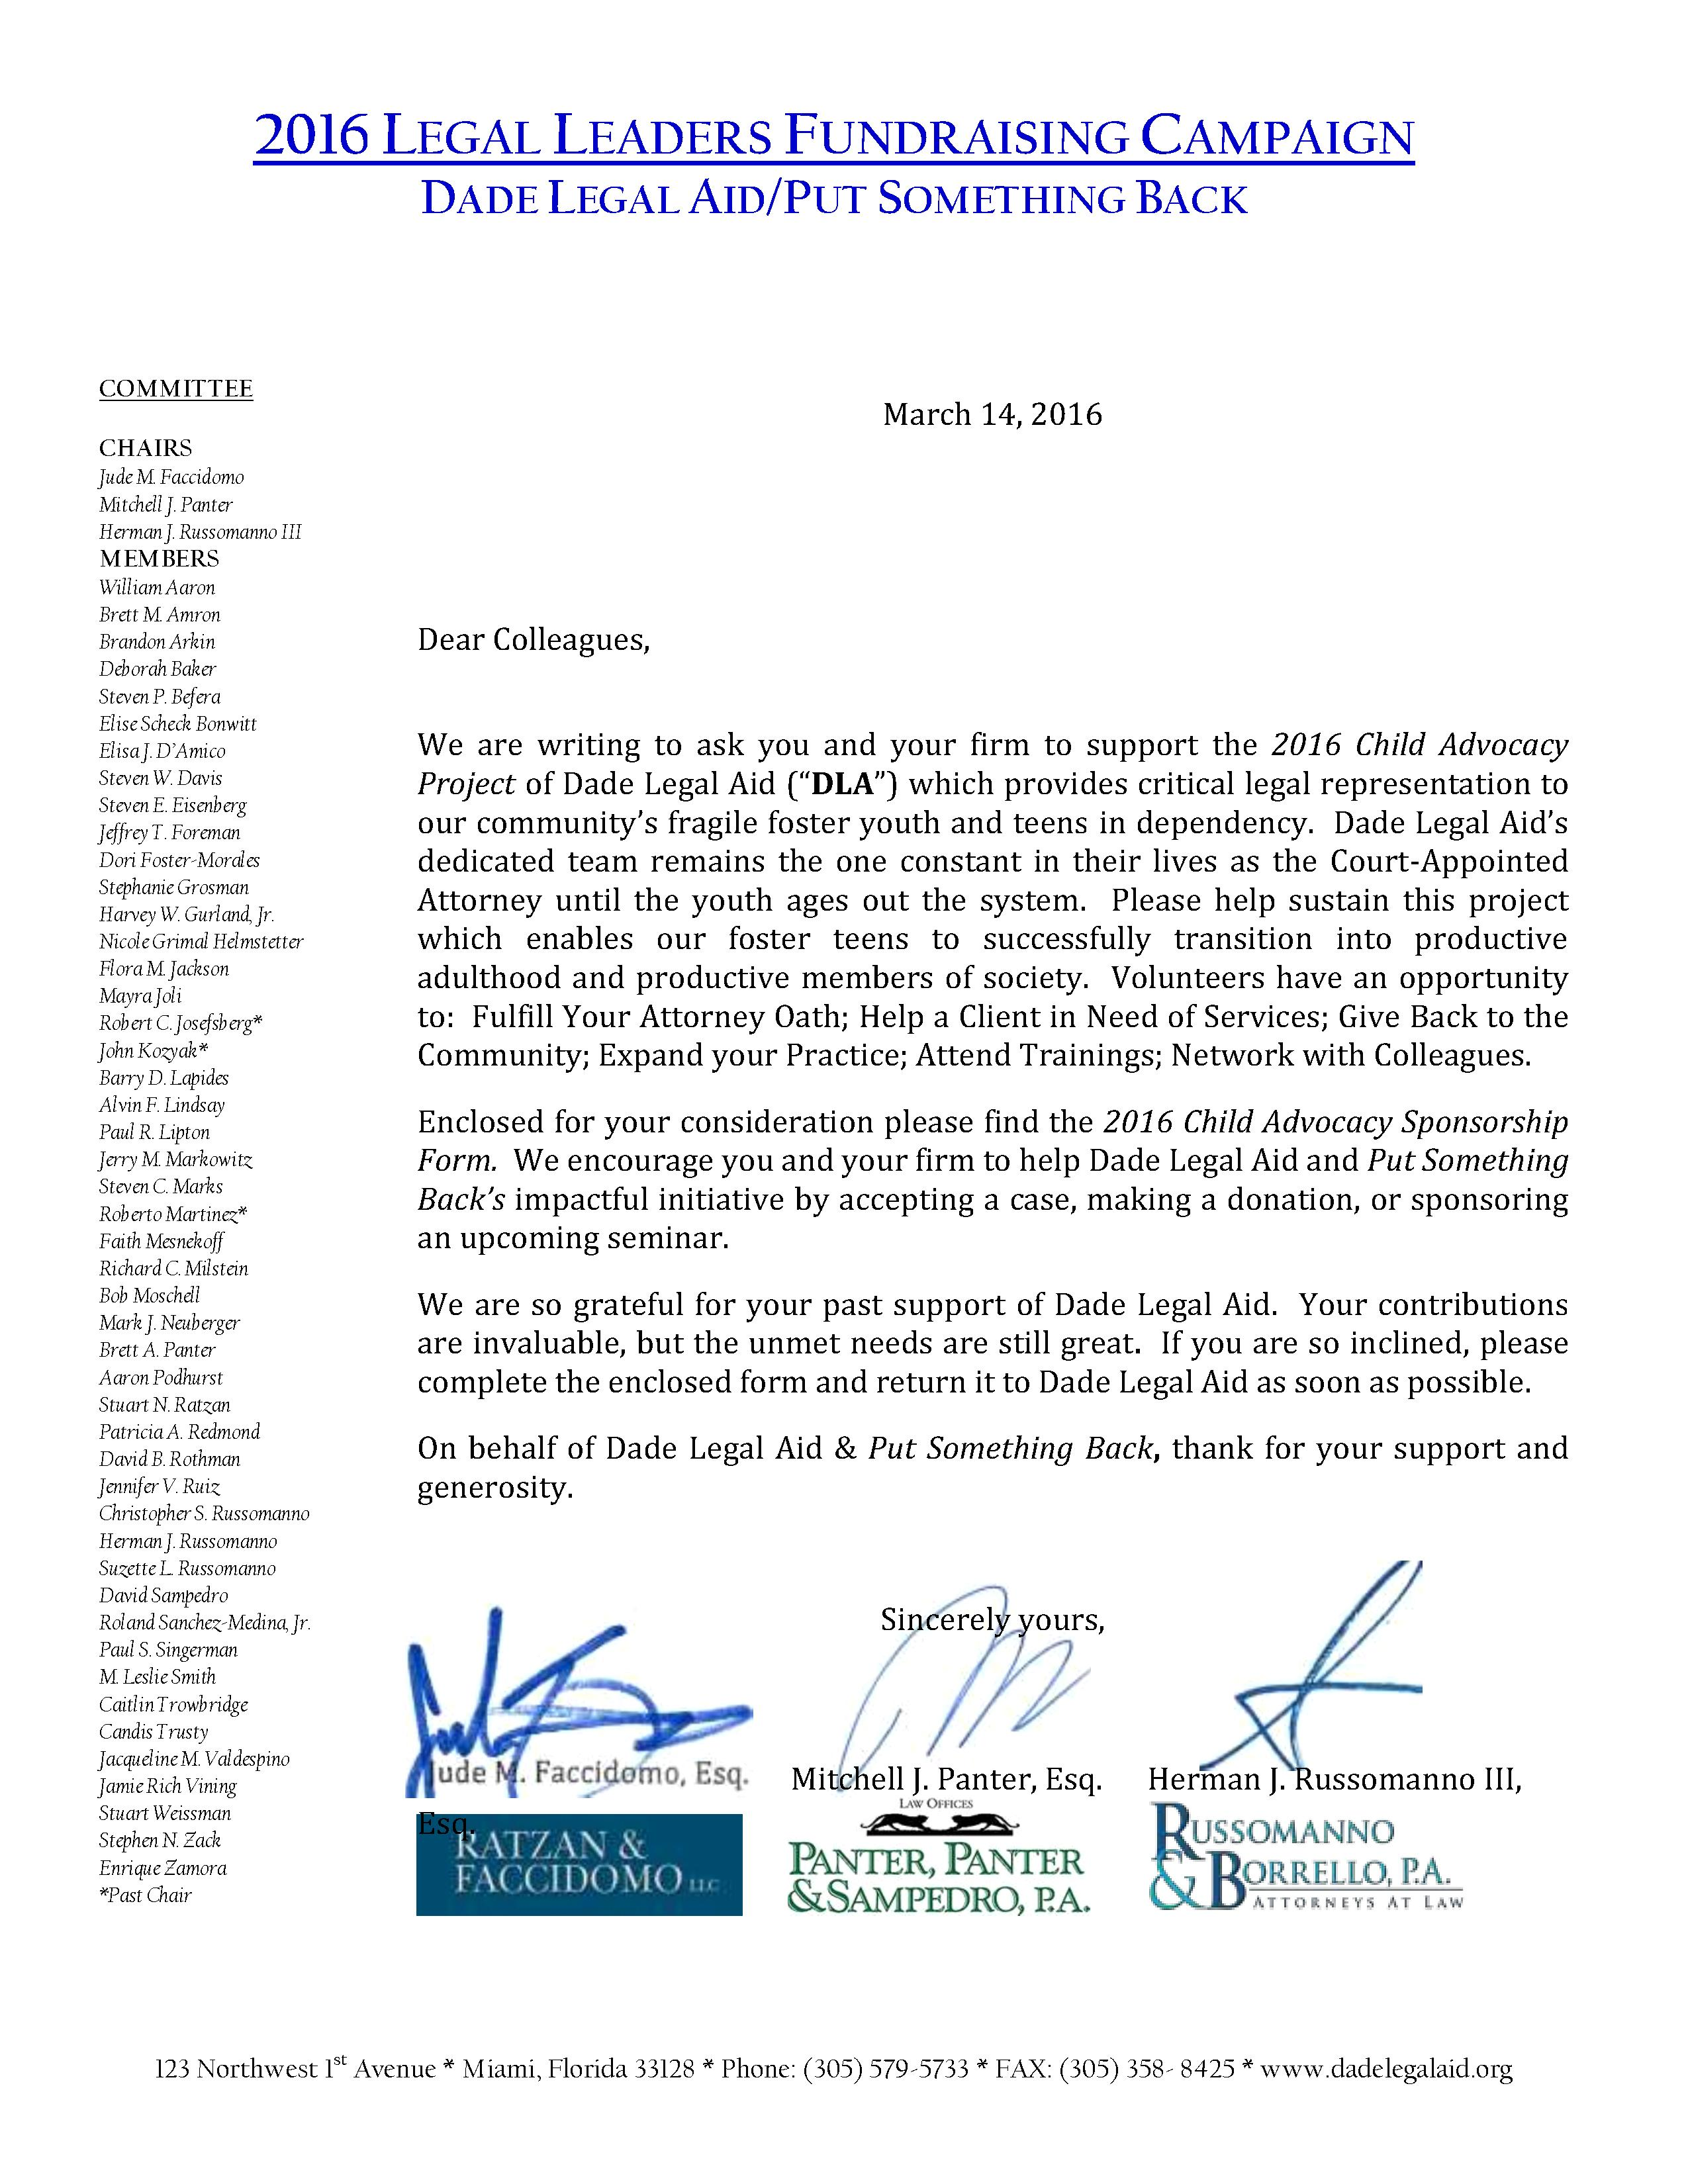 CHILD ADVOCACY LEGAL LEADERS LETTER 2016 -REVISED#2